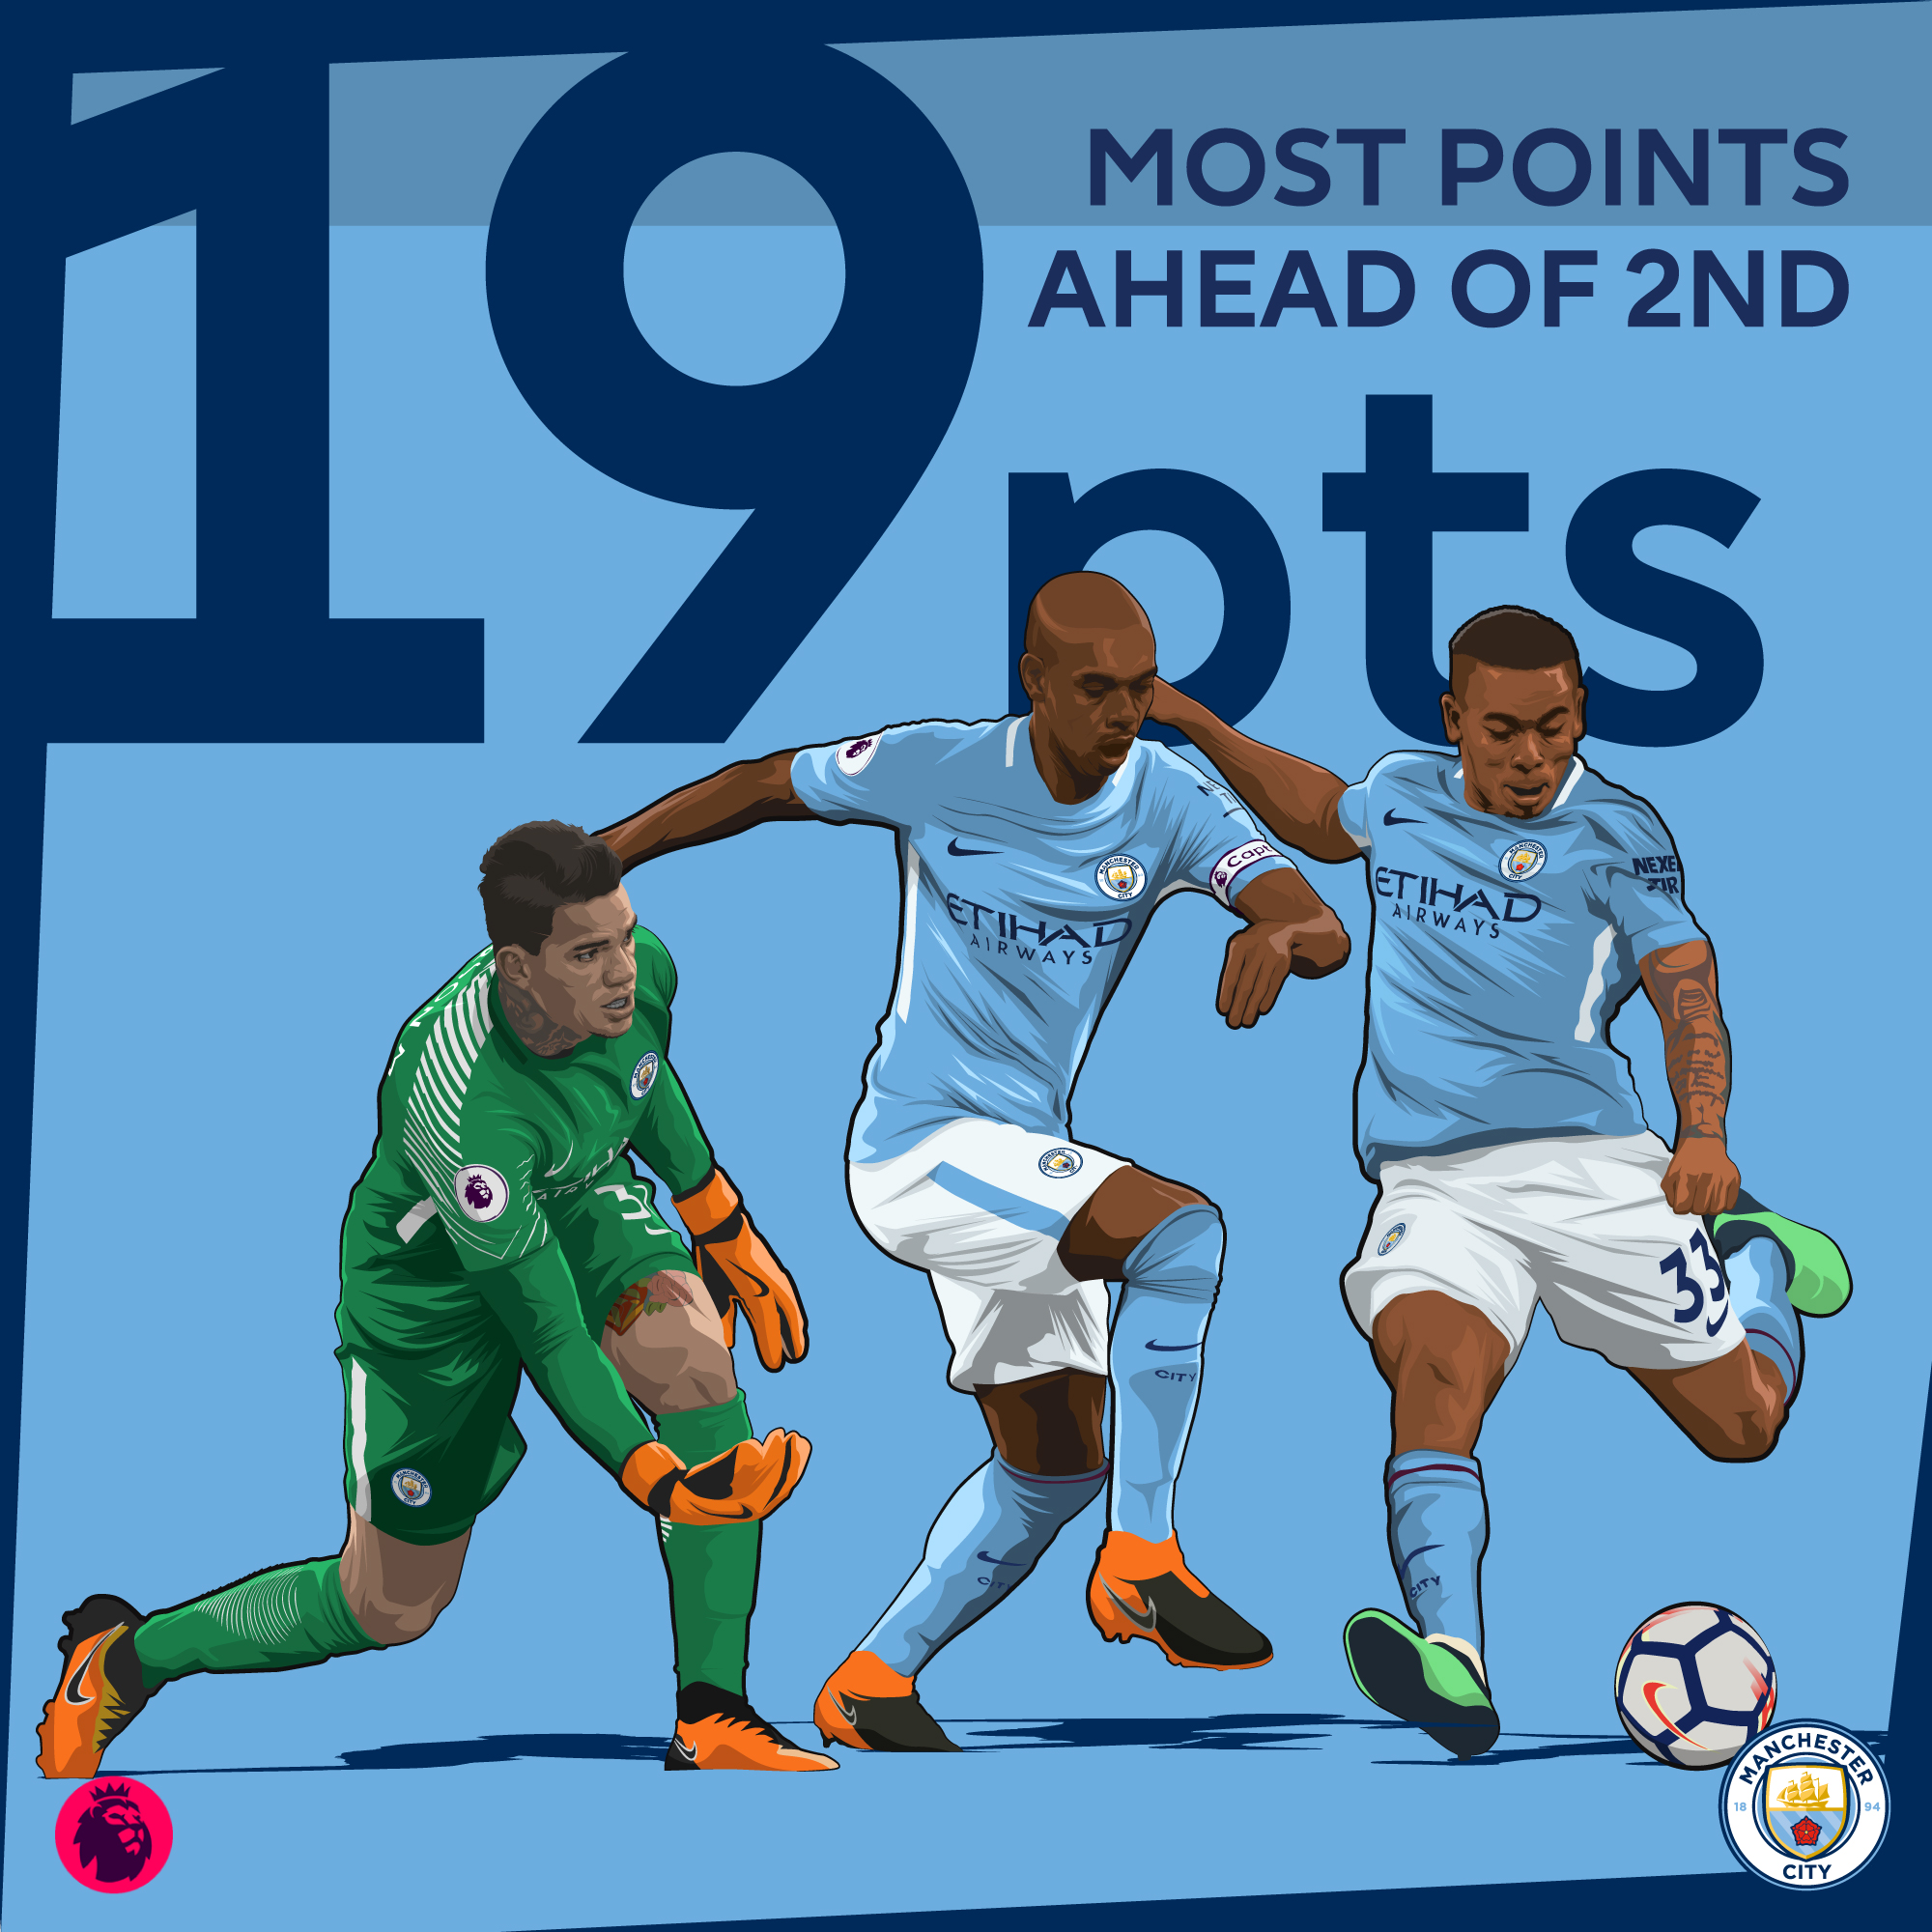 Man-City-Most-Points-Ahead-of-Second